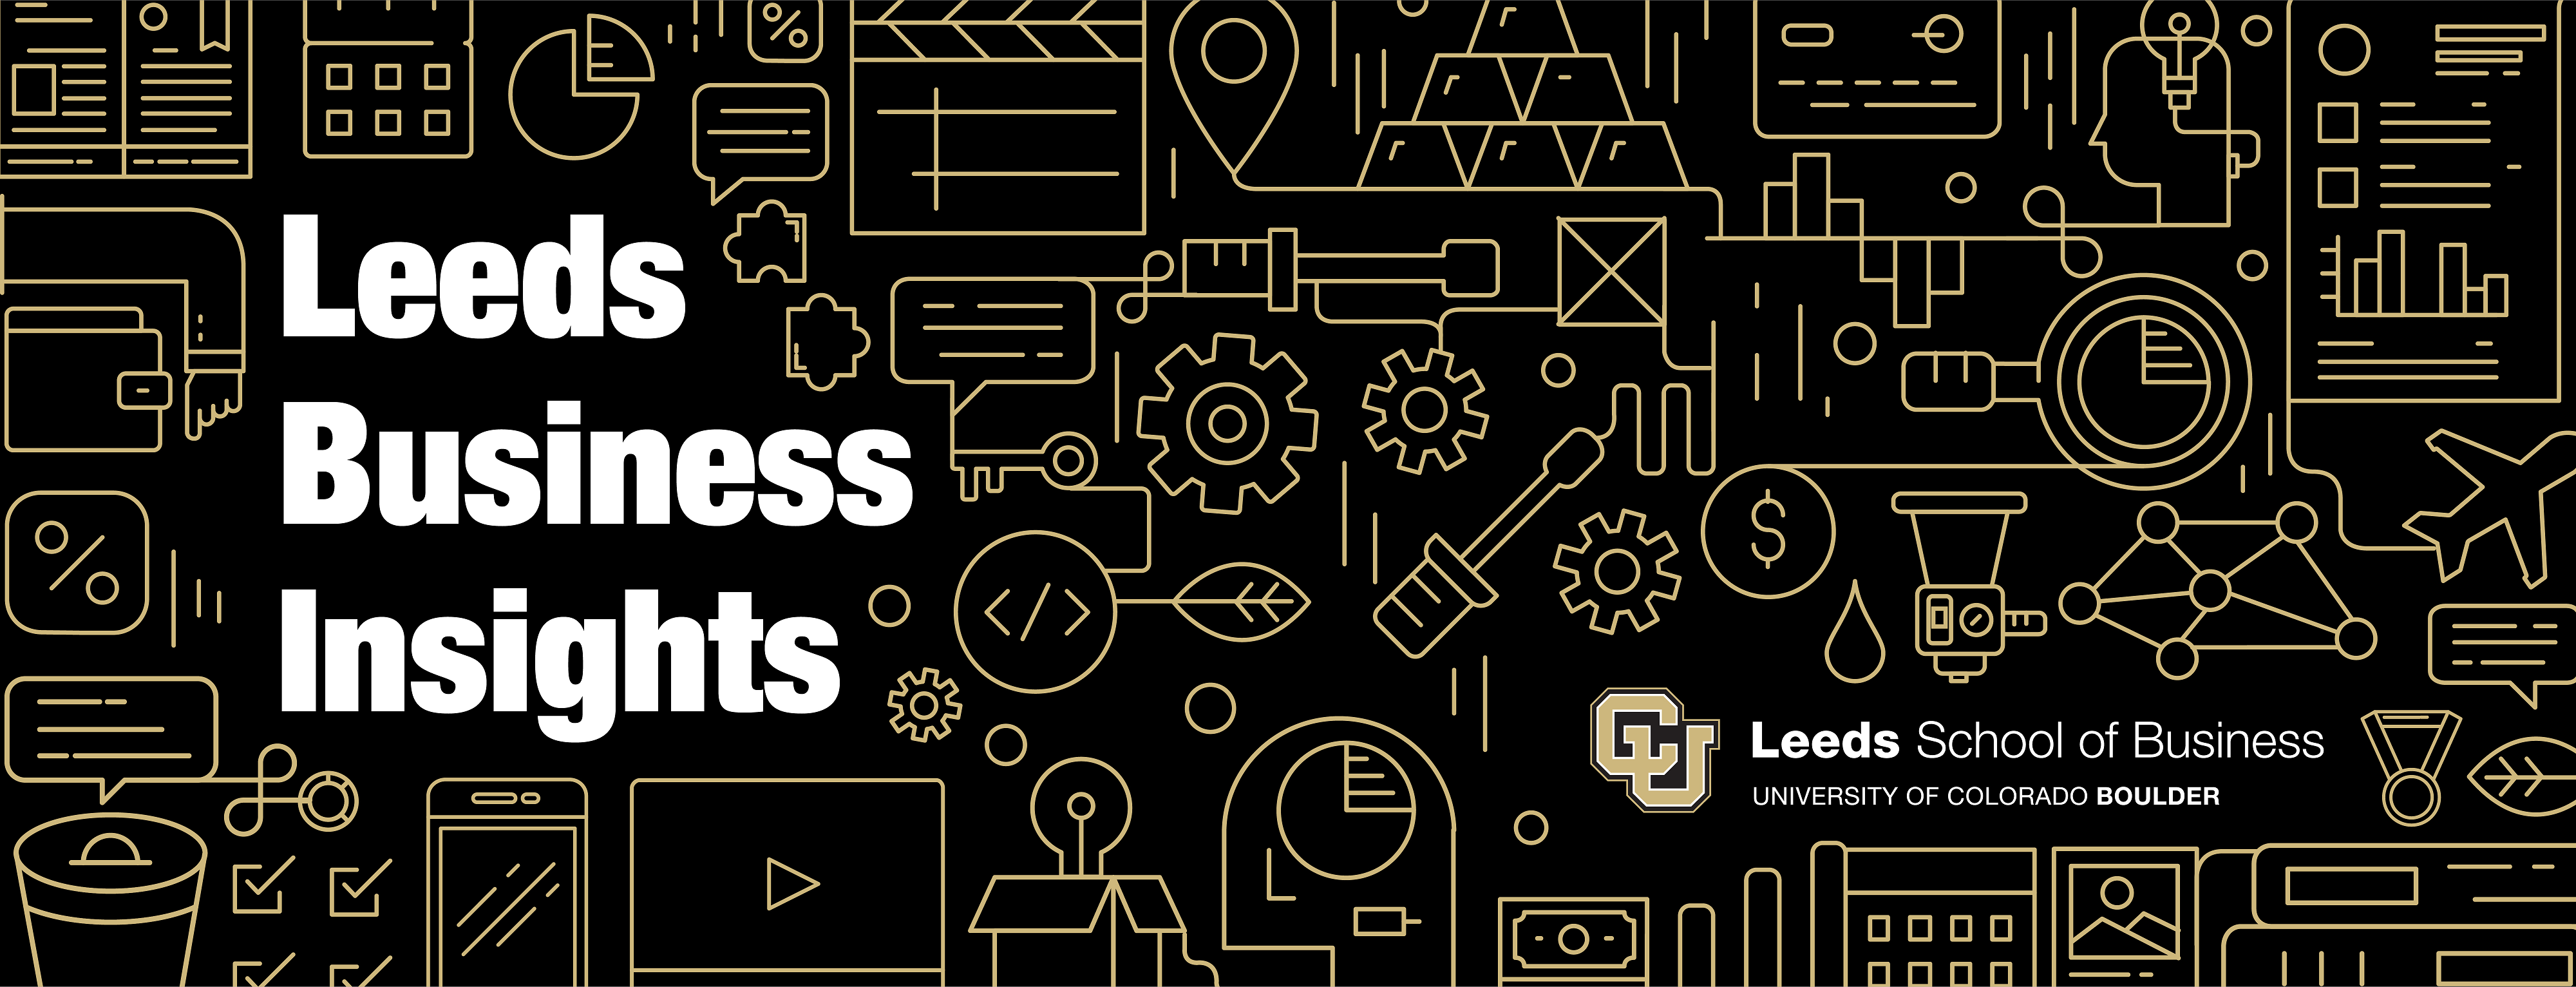 Leeds Business Insights - Denver